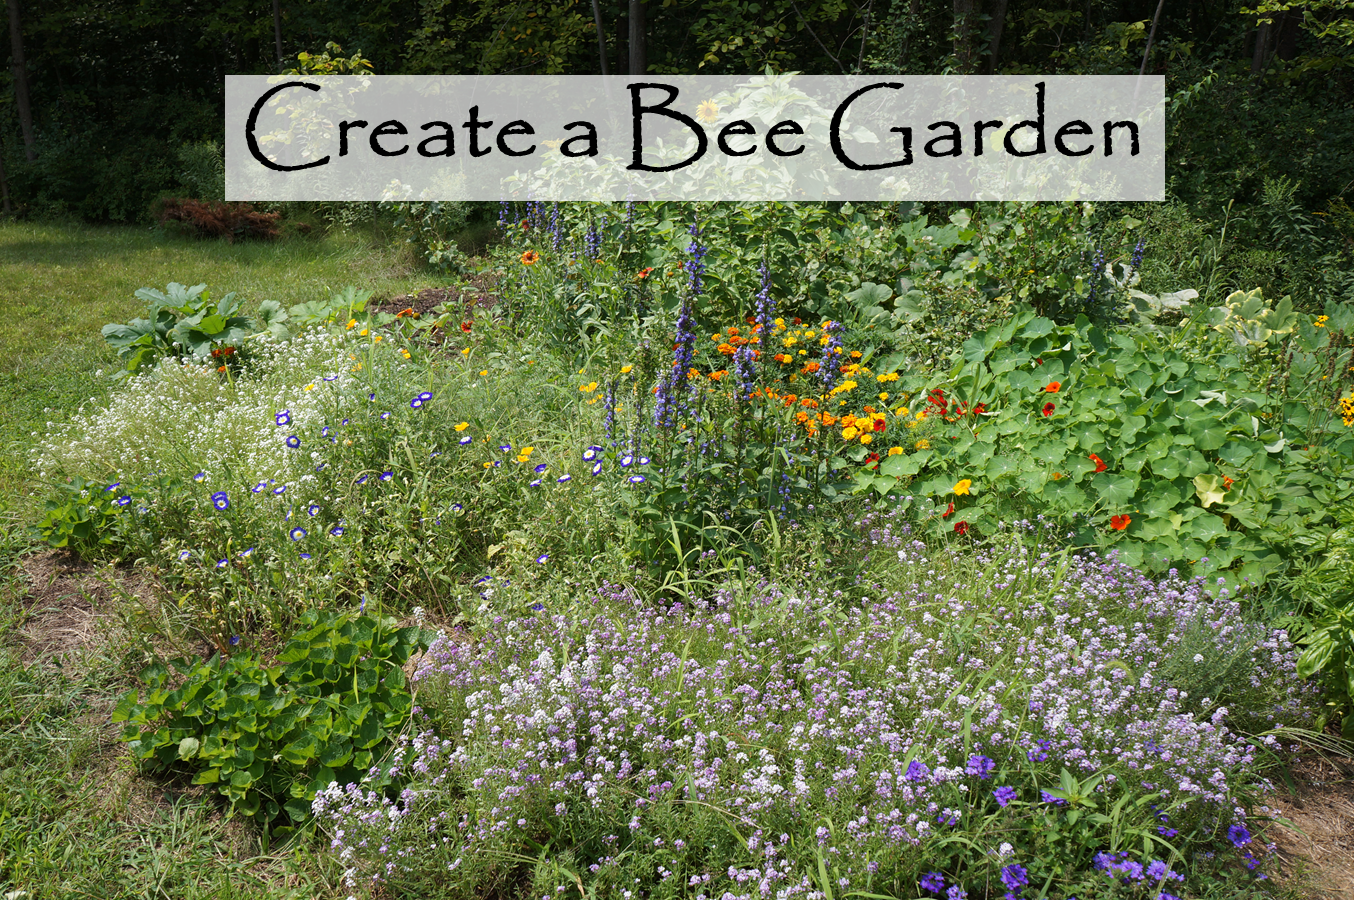 Delightful Wild Beehive   Whether You Keep Your Own Bee Hives Or Count On Wild Bees To  Pollinate ...   MORE THAN HONEY   Pinterest   Beehive, Bees And Gardens